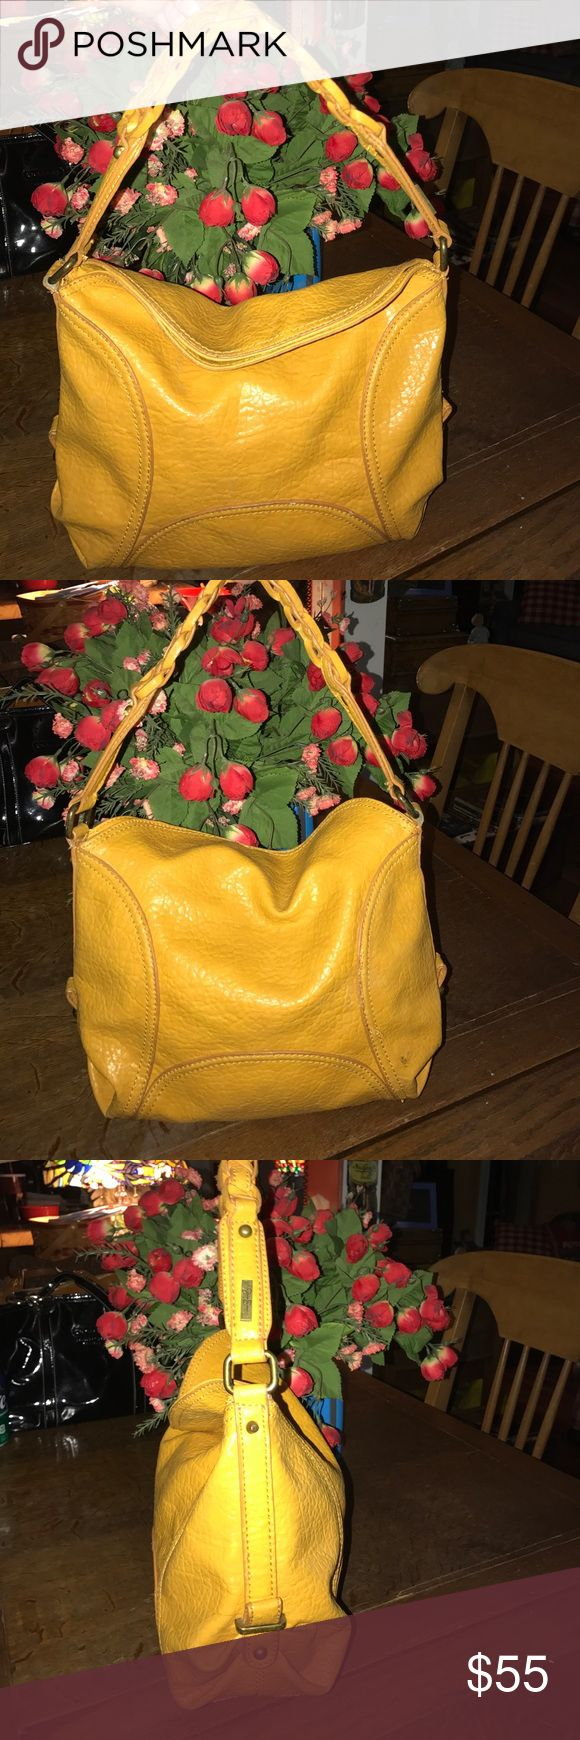 "Jessica Simpson Mustard color handbag Cute Jessica Simpson shoulder bag ! 14x12x4 with 8"" shoulder drop Jessica Simpson Bags Shoulder Bags"